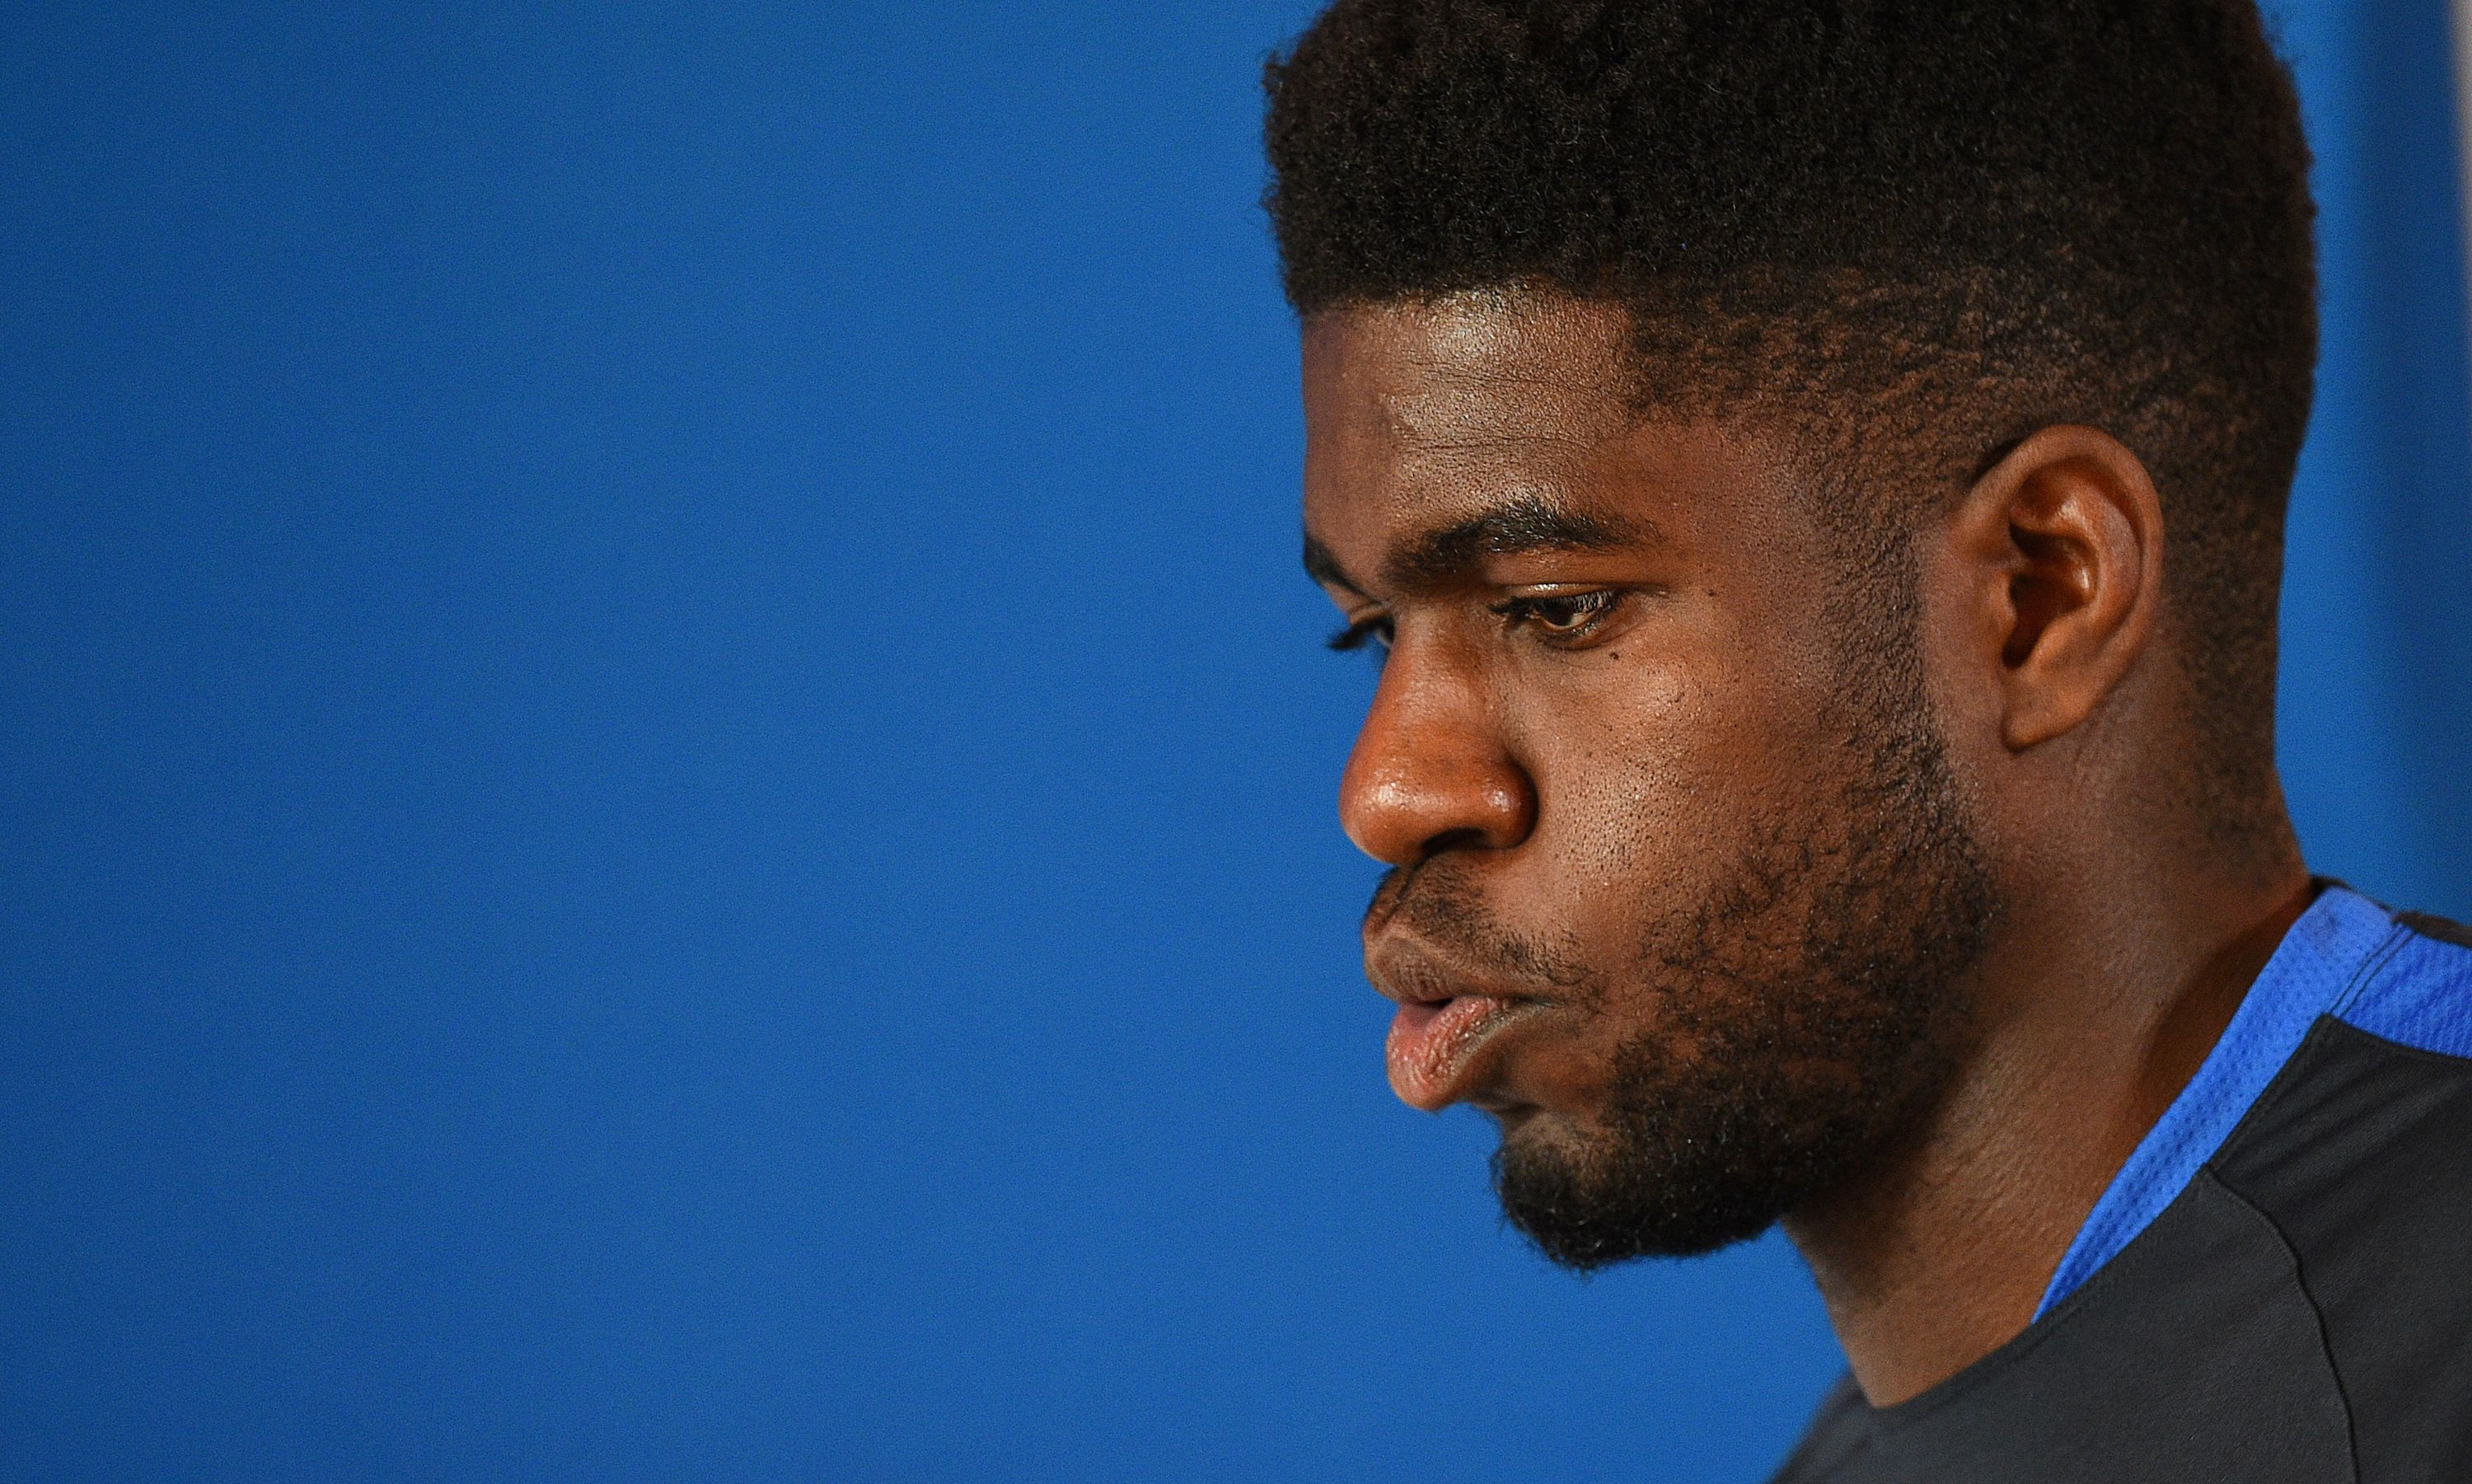 France's defender Samuel Umtiti arrives for a press conference at the Aguilera stadium in Biarritz, on May 21, 2016, during the team preparation for the Euro 2016 European football. / AFP / FRANCK FIFE (Photo credit should read FRANCK FIFE/AFP/Getty Images)